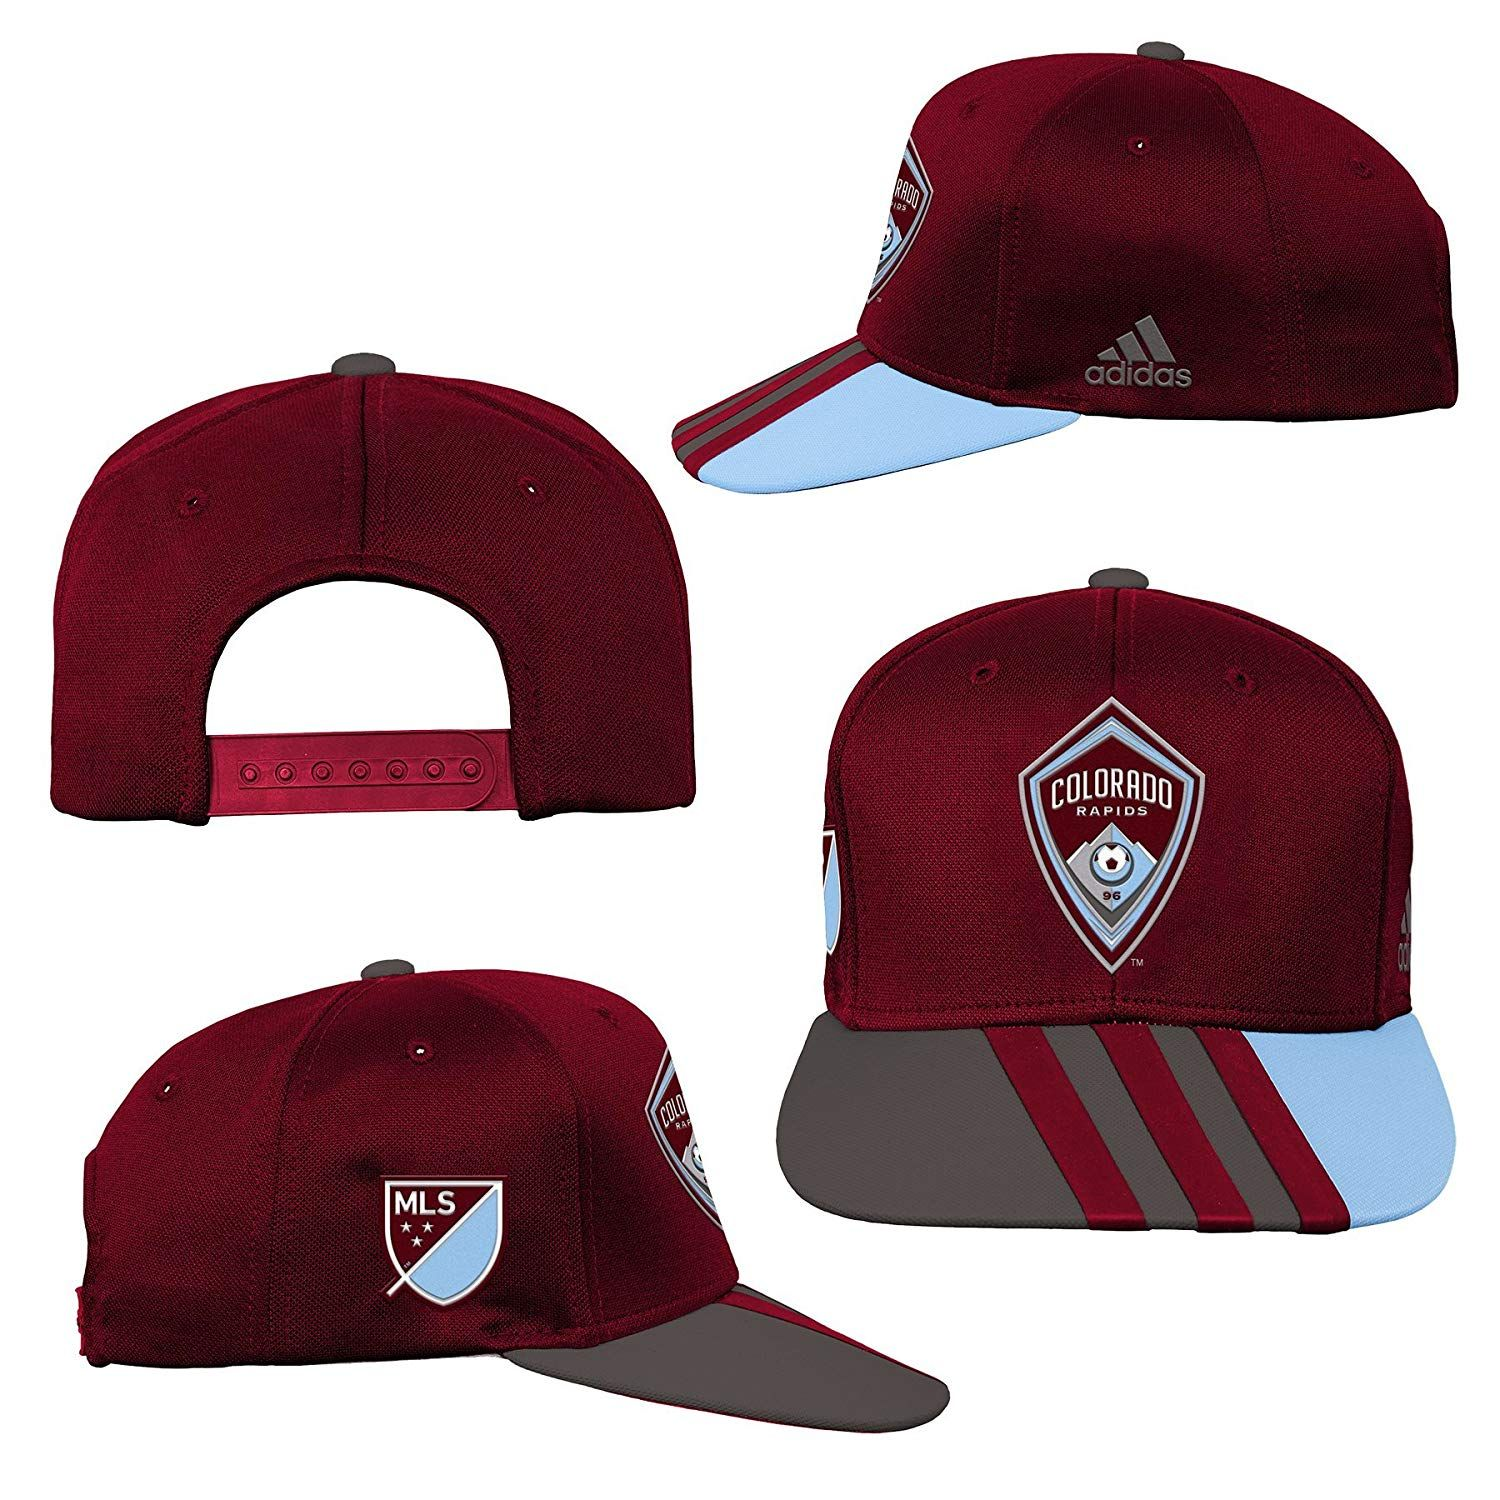 a392d73edbb1d Outerstuff MLS Colorado Rapids R S8FMK Youth Boys Flatbrim Snapback ...